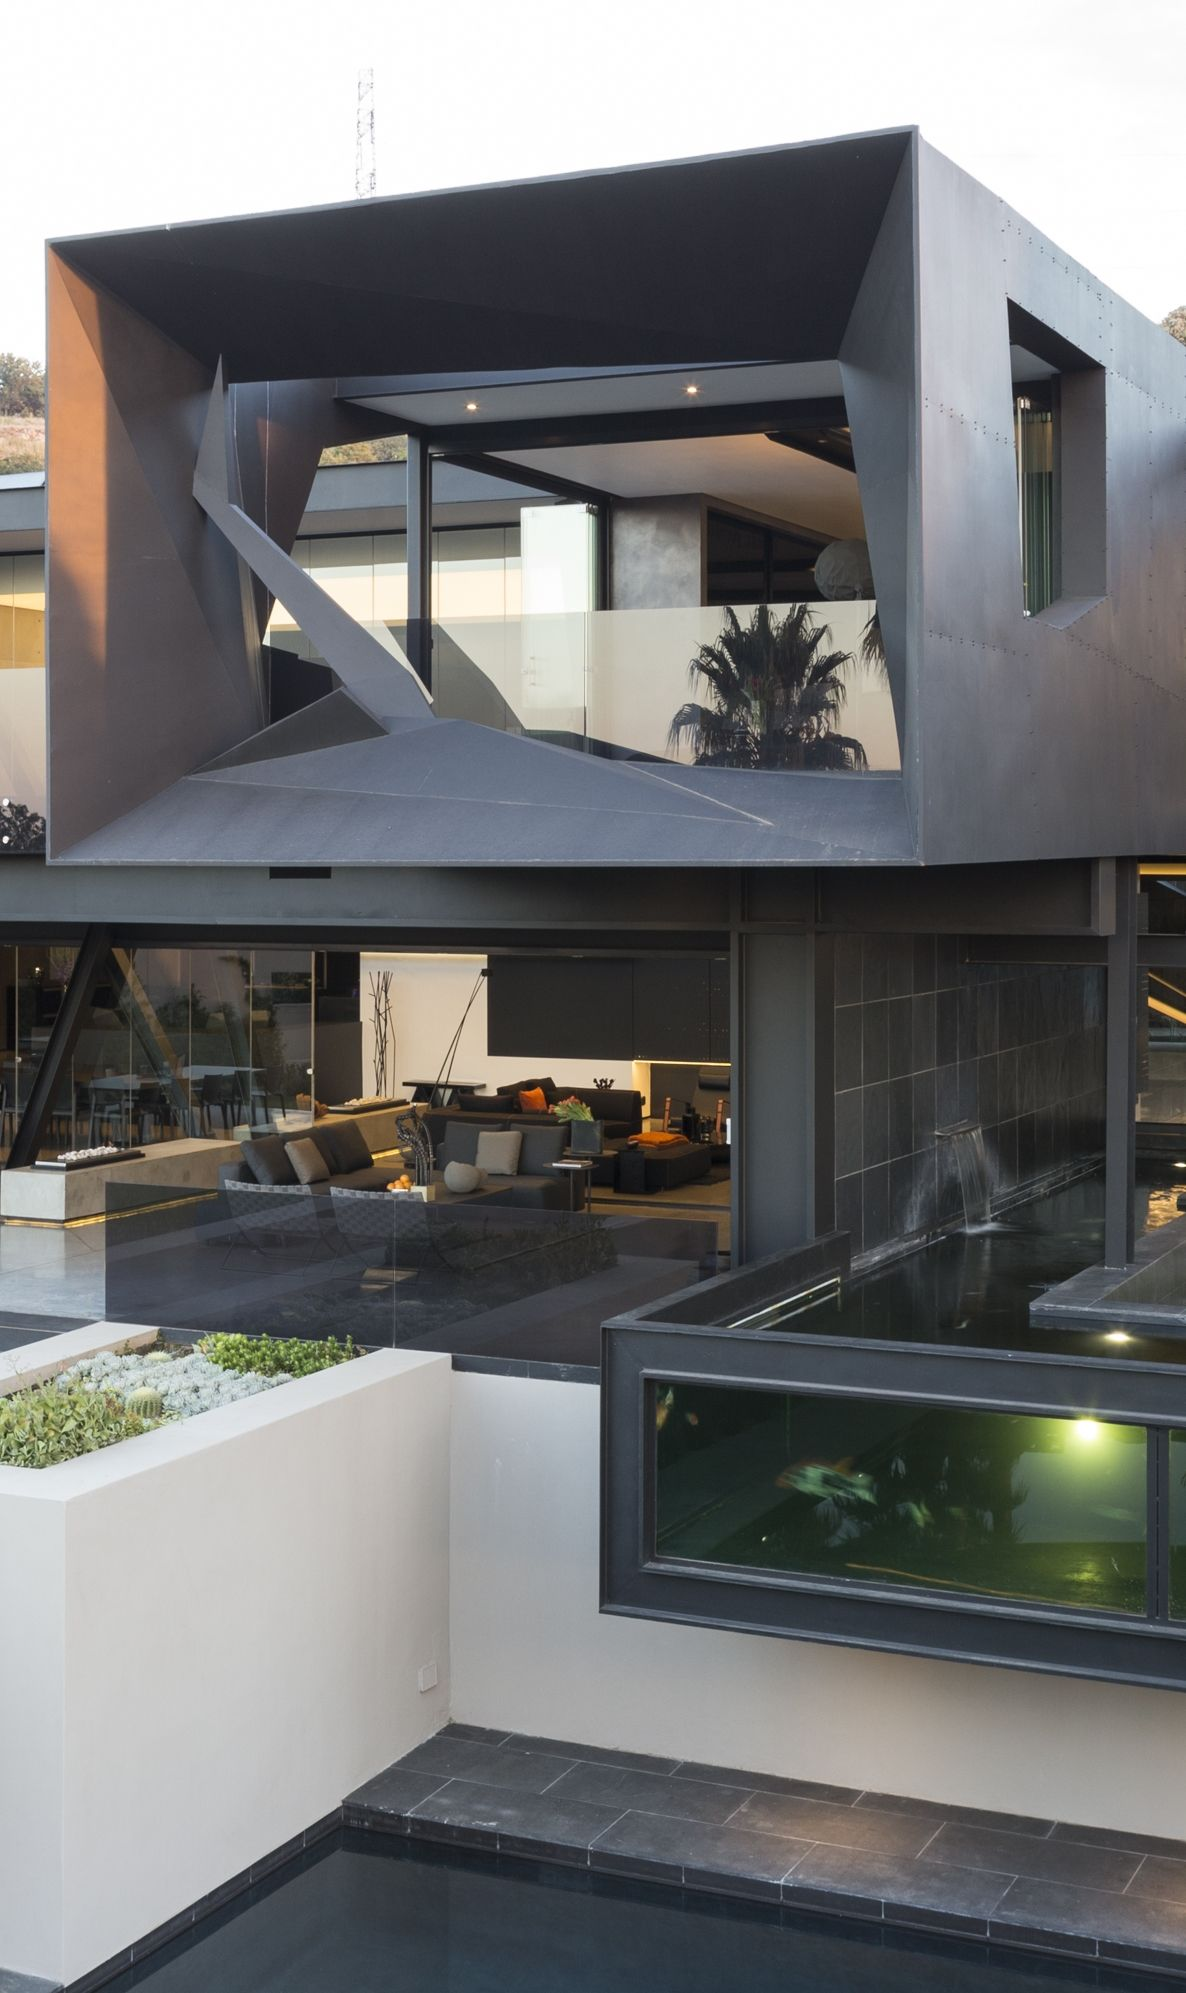 Best houses in the world amazing kloof road house  also vie inspiree rh pinterest